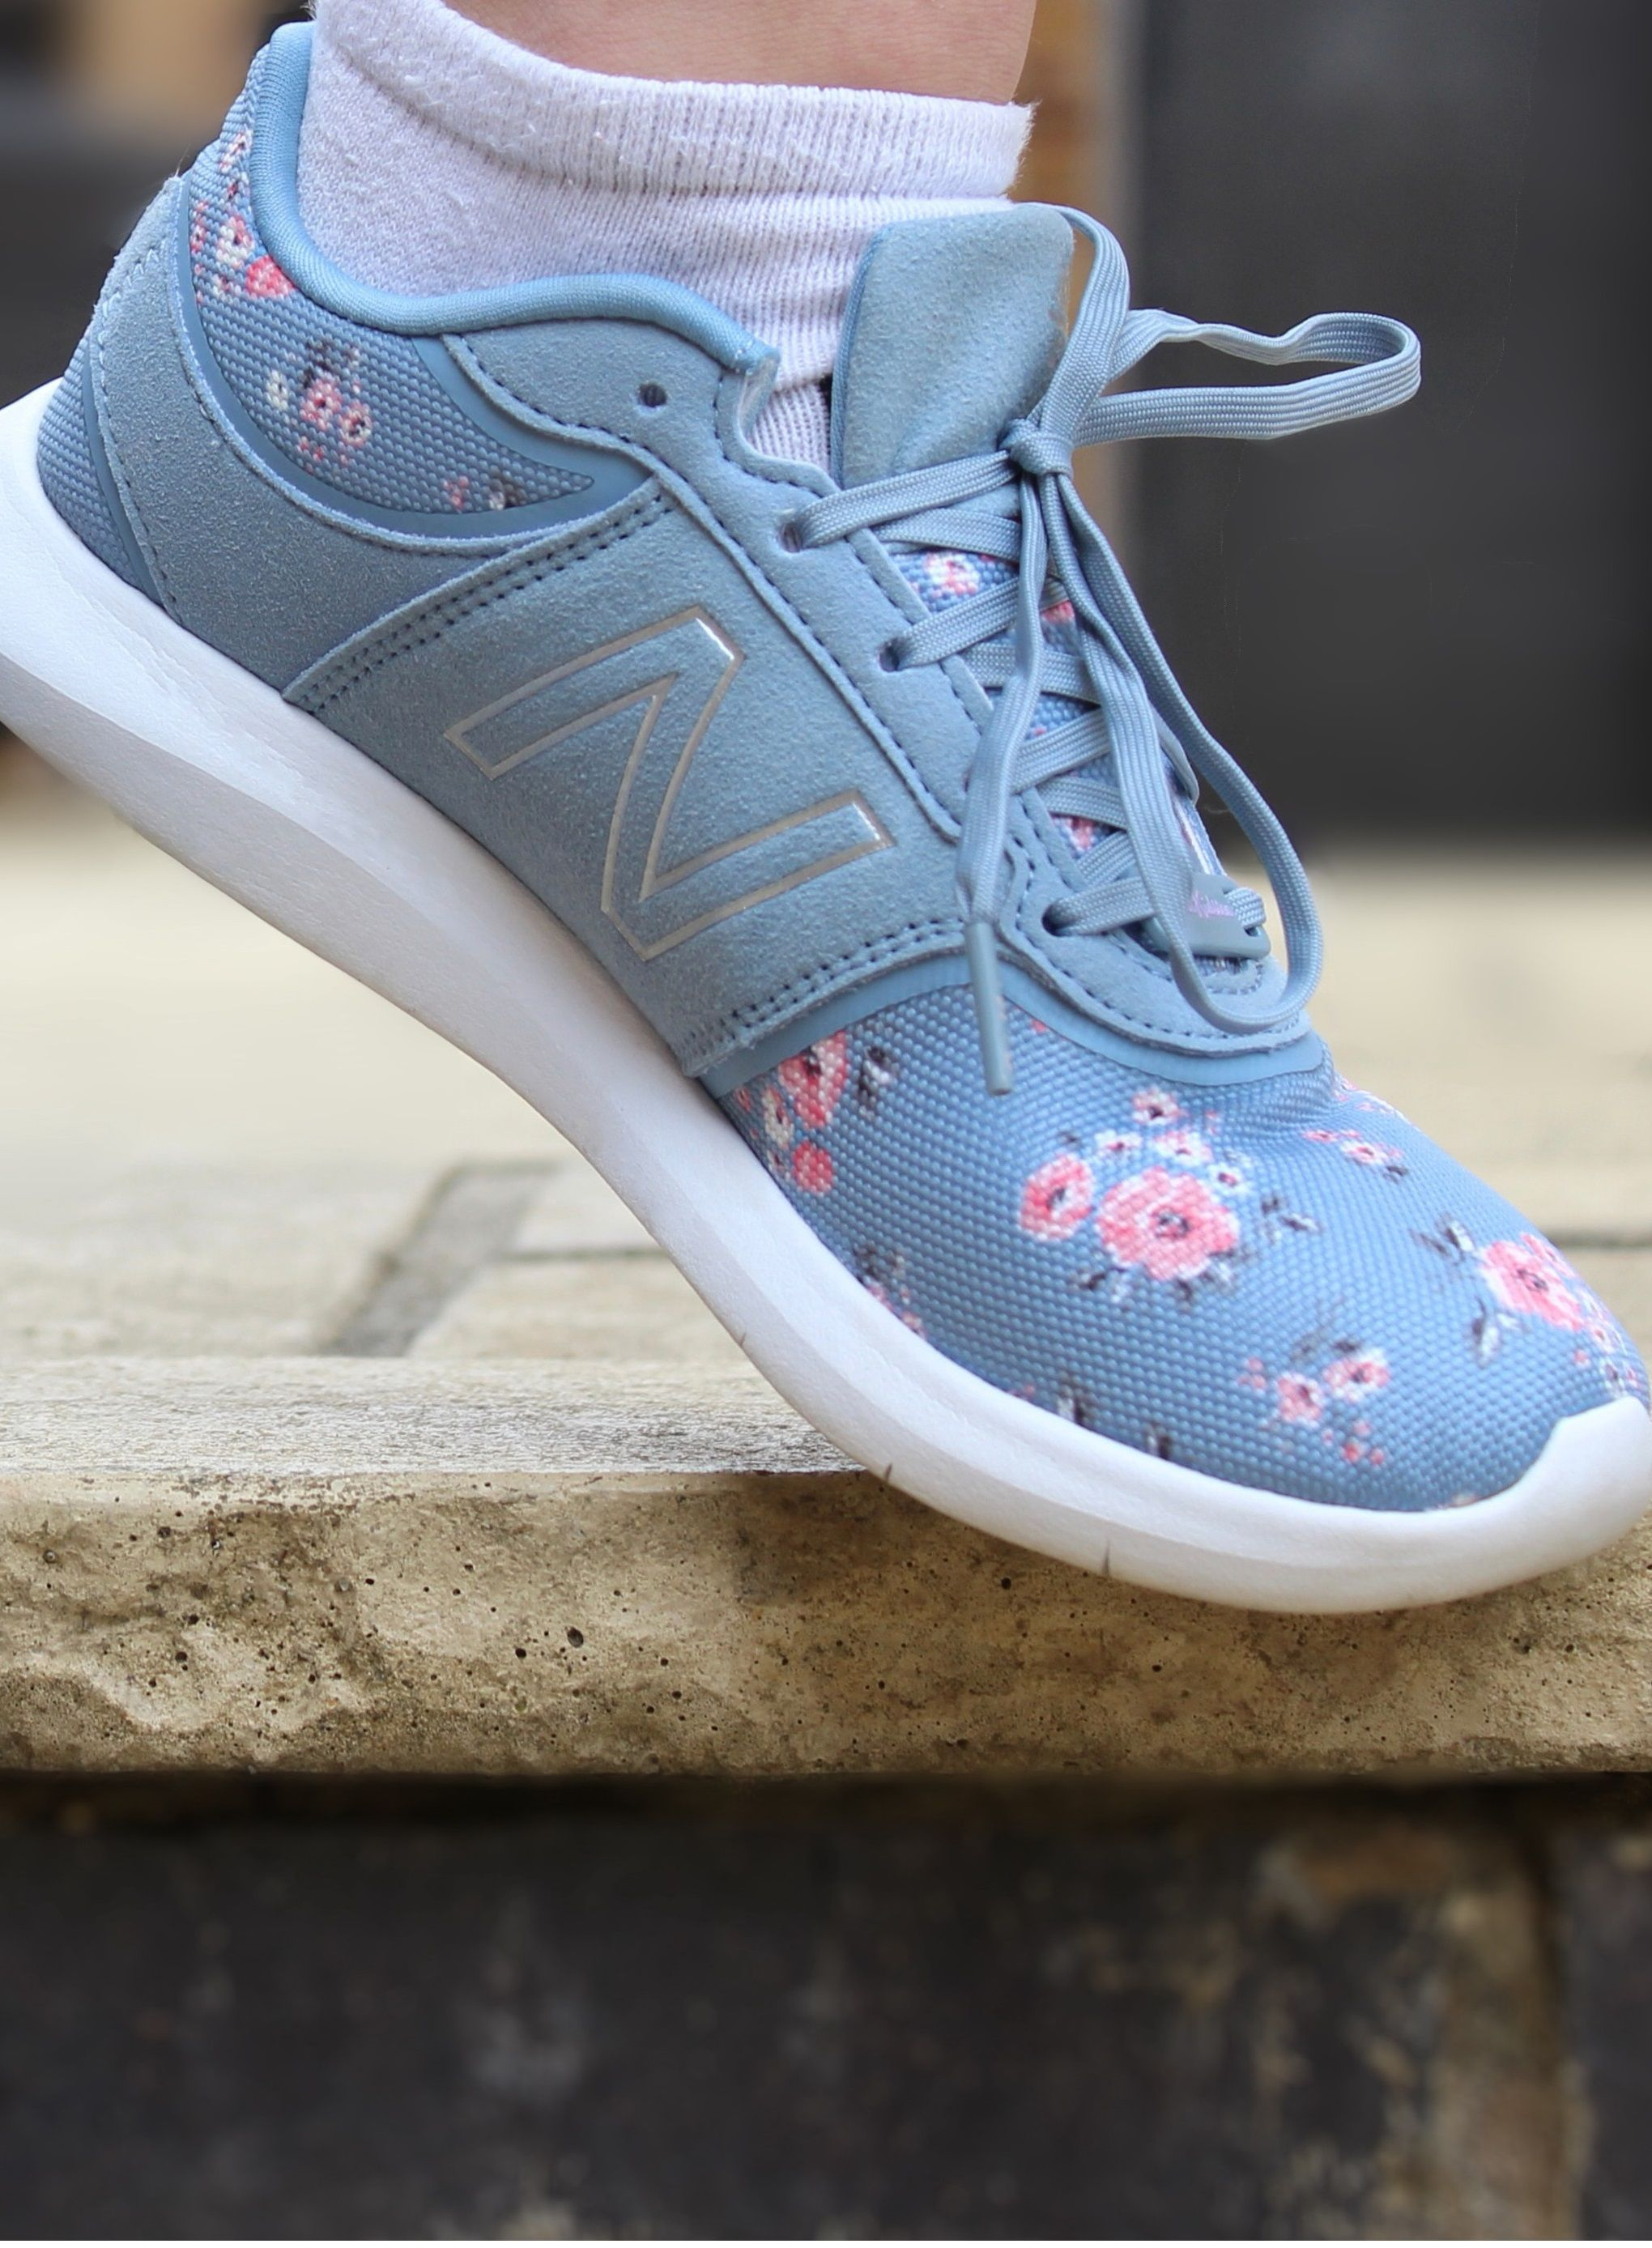 sale retailer c3dc7 af895 We ve taken a New Balance classic 415 style and blended it with our pretty  Grove Bunch print in soft grey blue. The trainers are finished with CK and  New ...